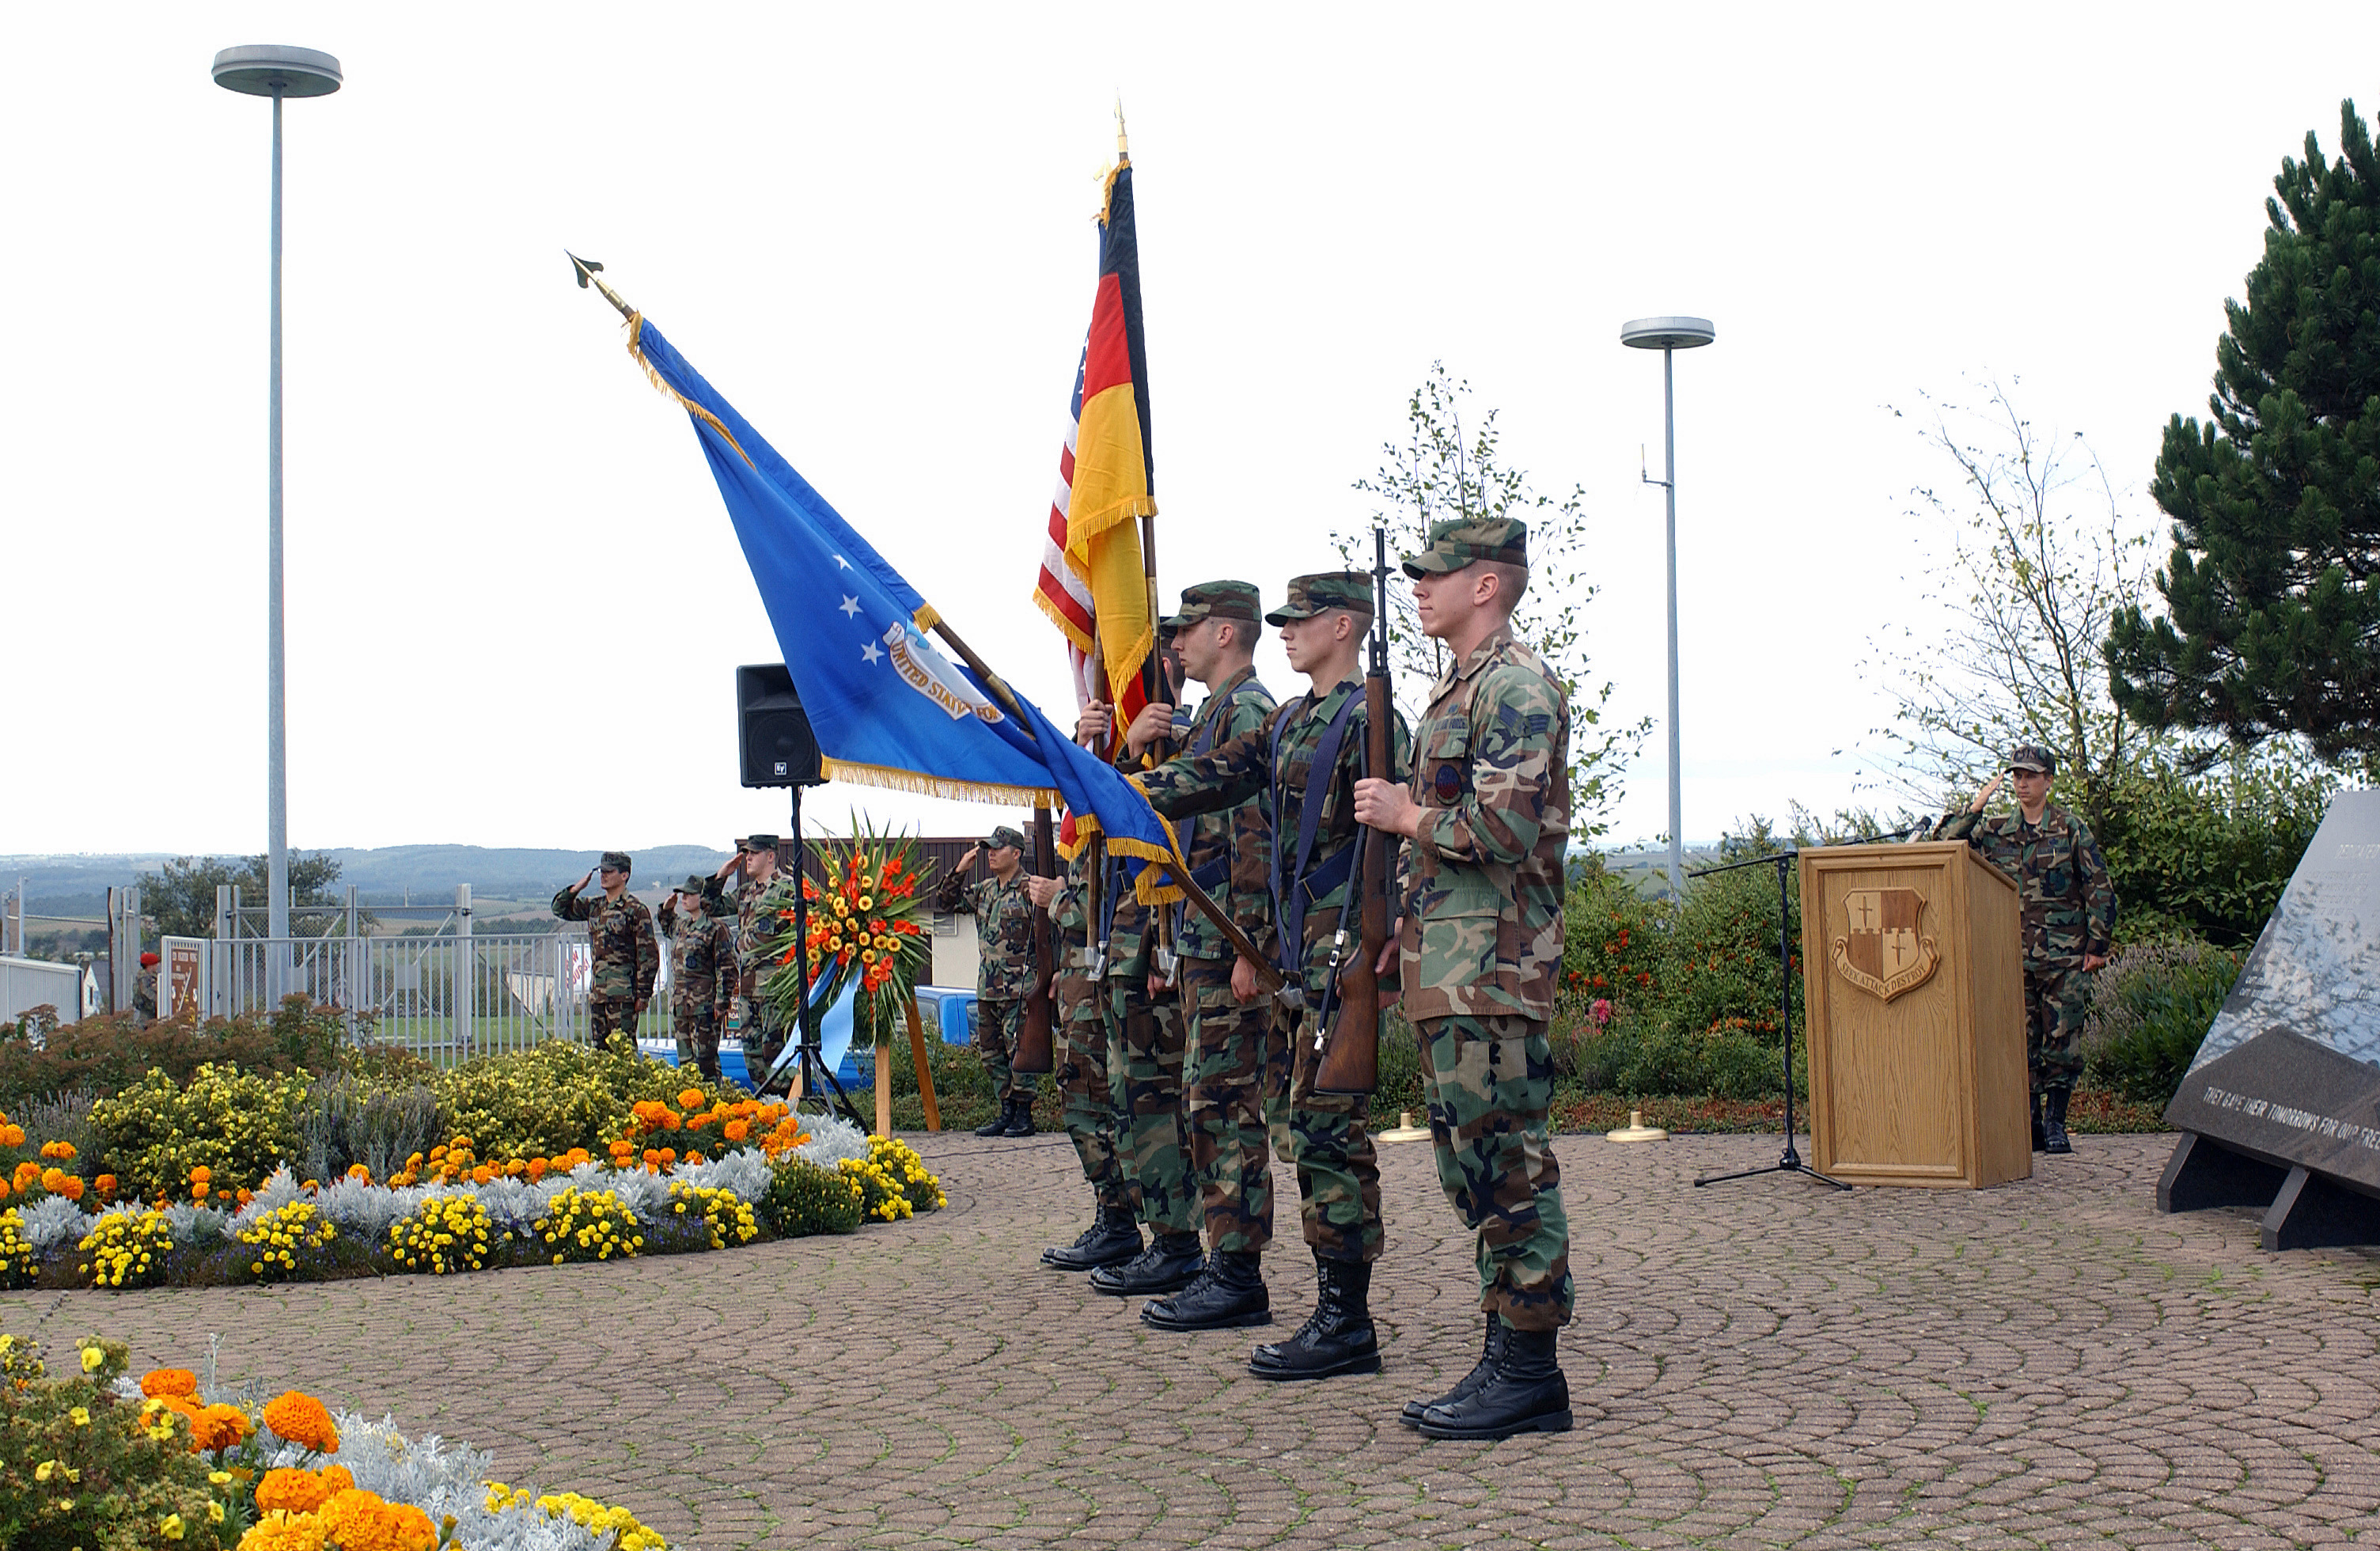 US Air Force (USAF) Honor Guard personnel at Spangdahlem Air Base (AB), present arms during the German and American national anthems at a Remembrance Ceremony honoring the victims of the terrorist attacks of September 11th, 2001